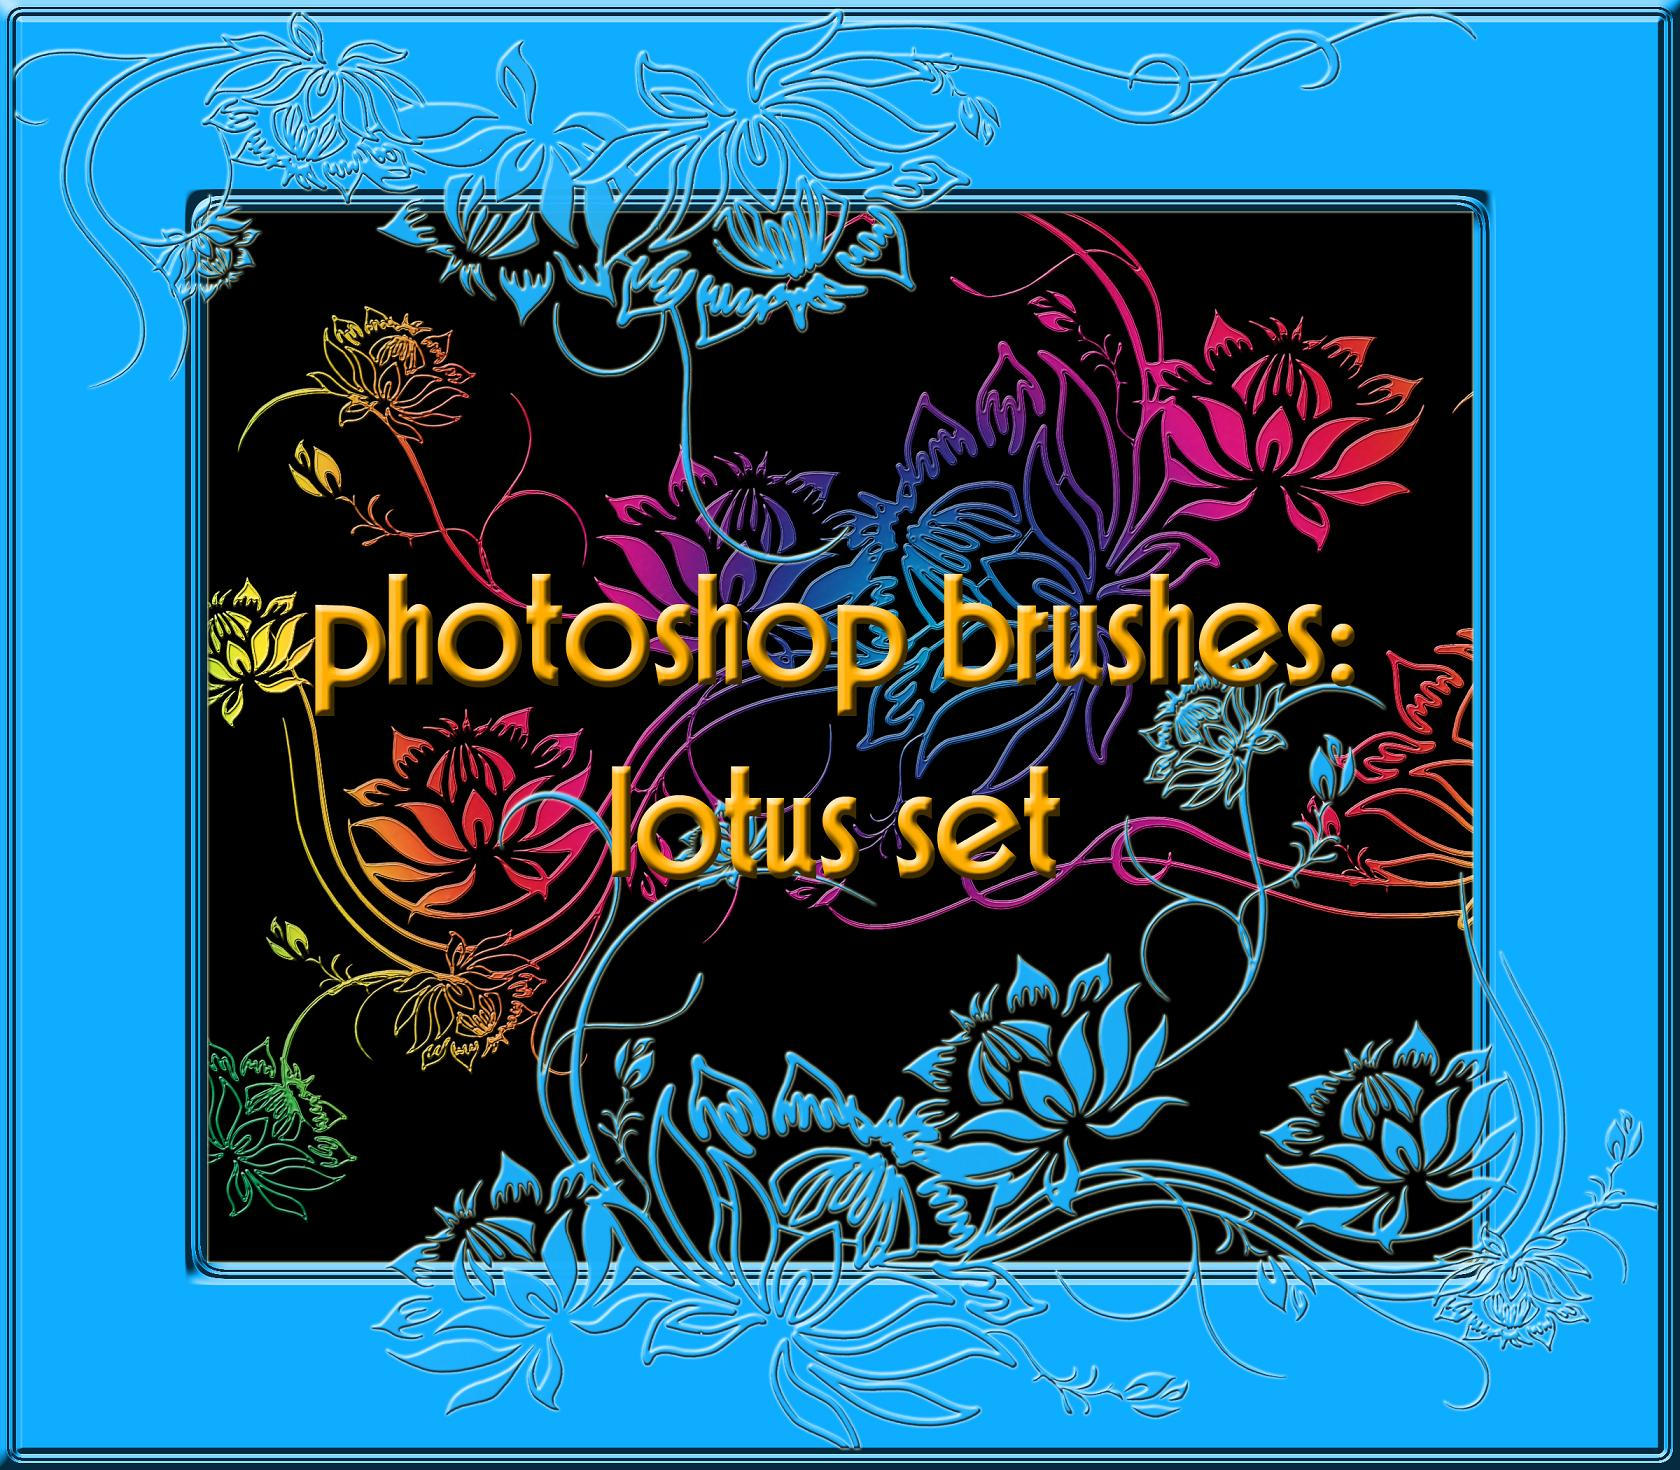 photoshop brushes: lotus set by gutterlily10